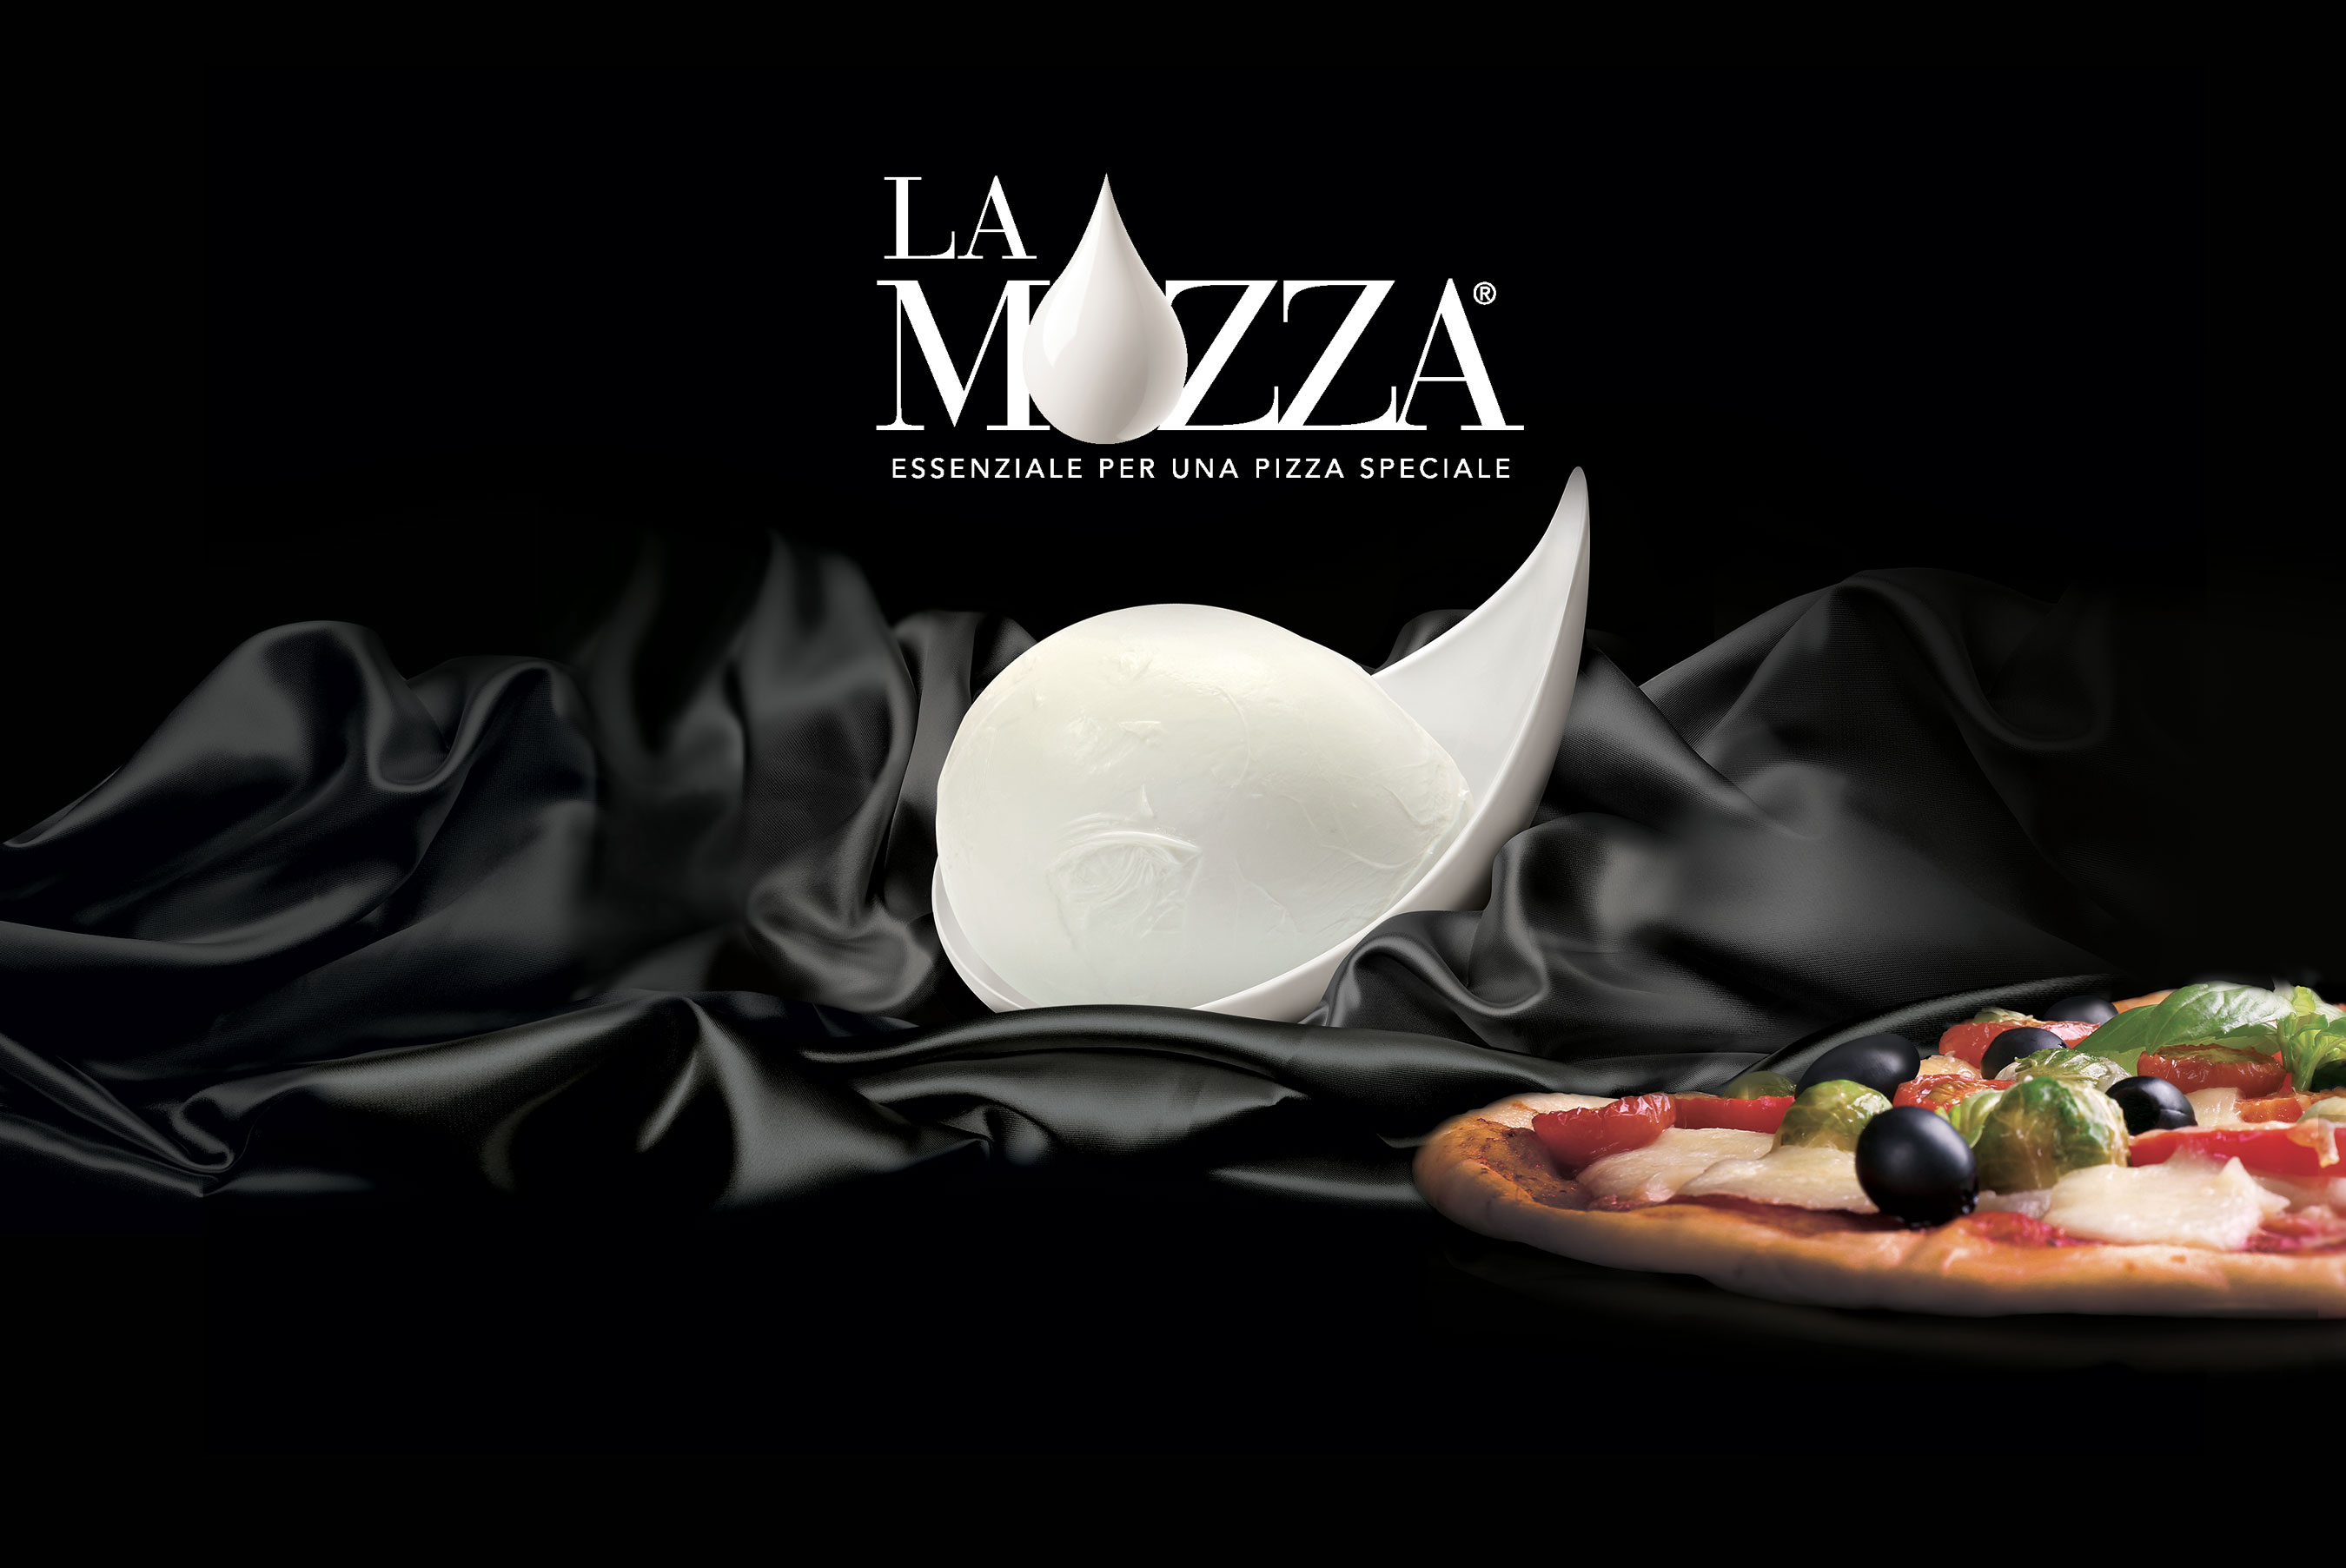 QUANDO LA MOZZARELLA FA LA DIFFERENZA